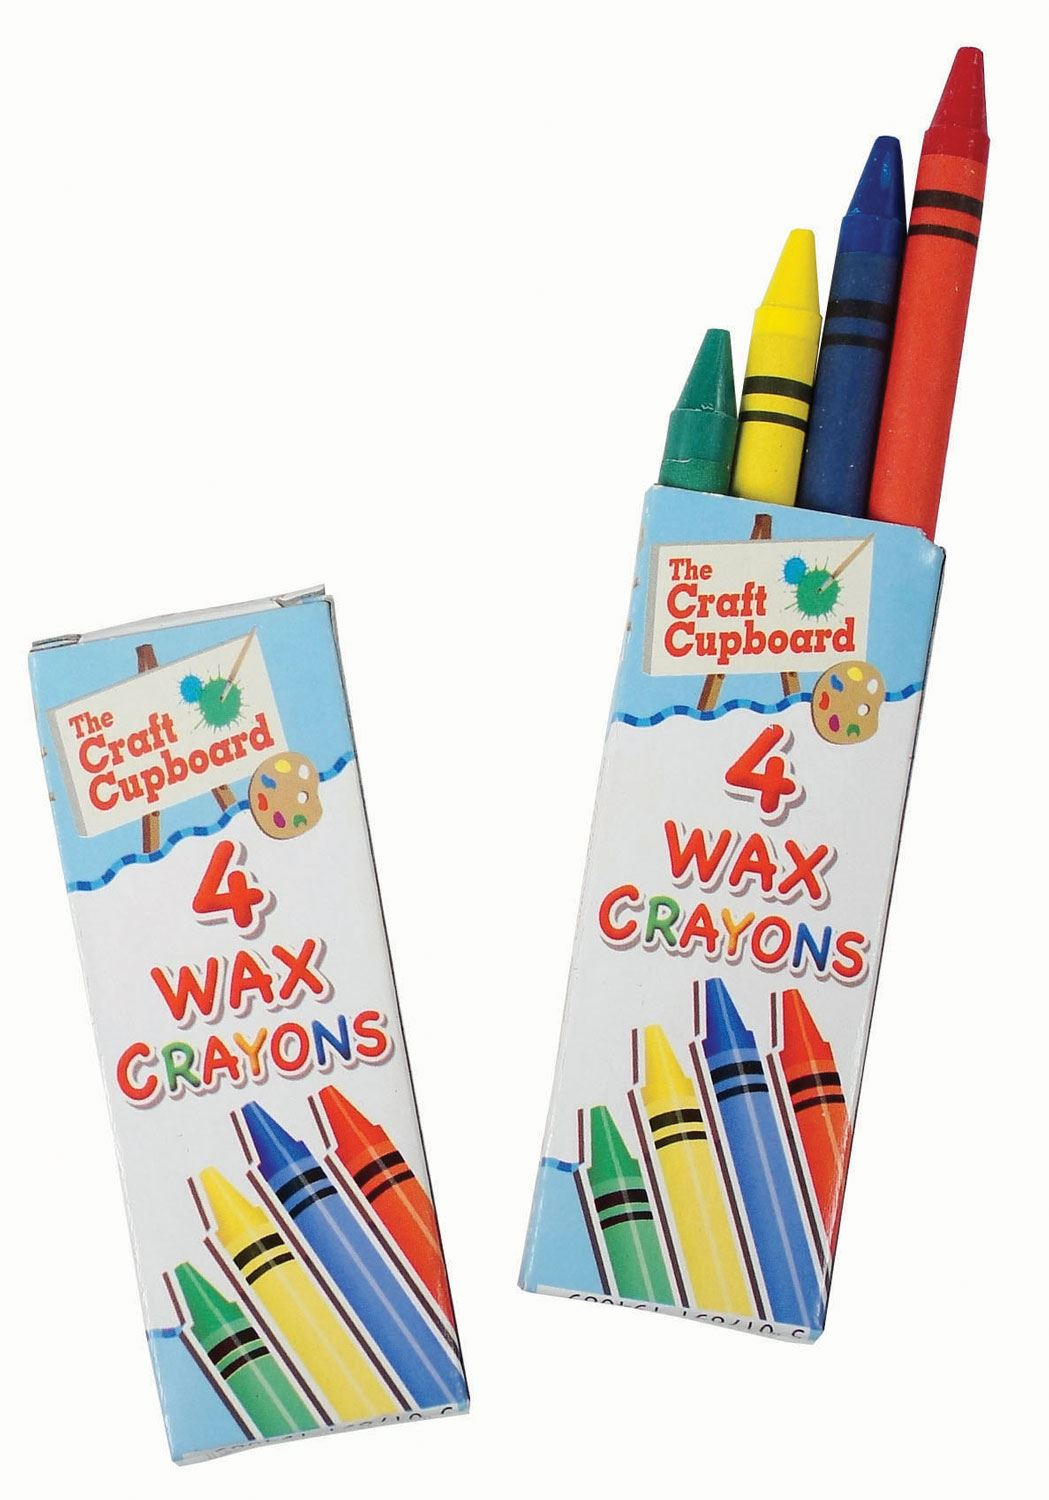 100 Packs of 4 Wax Crayons